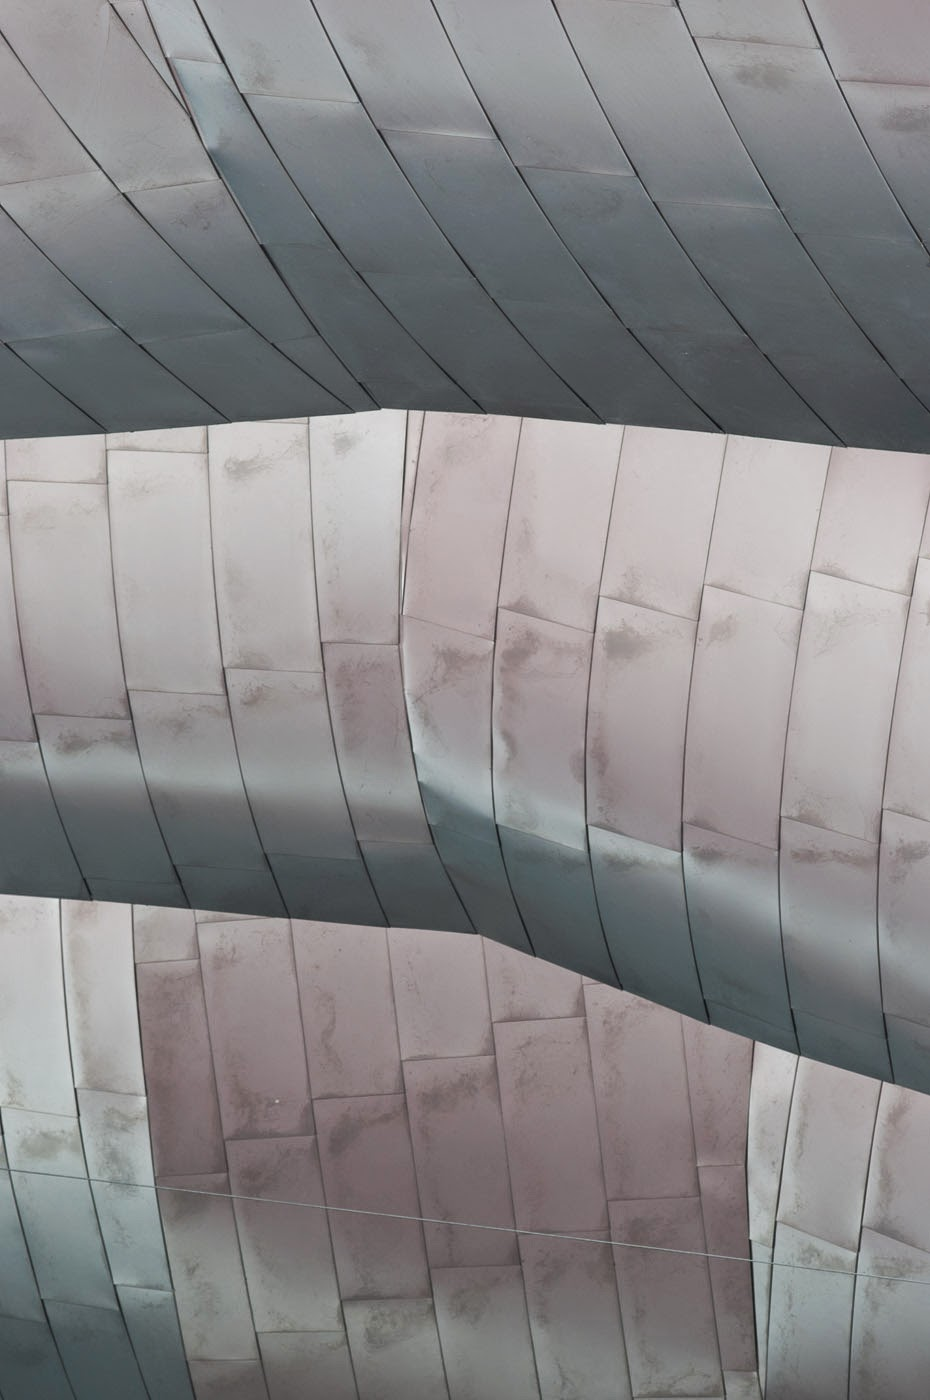 An architectural abstraction of the postmodern jay pritzker pavilion designed by architect Frank Gehry located in Chicago's Millennium park and photographed by photographic artist Tim Macauley for The Light Monkey Collective.